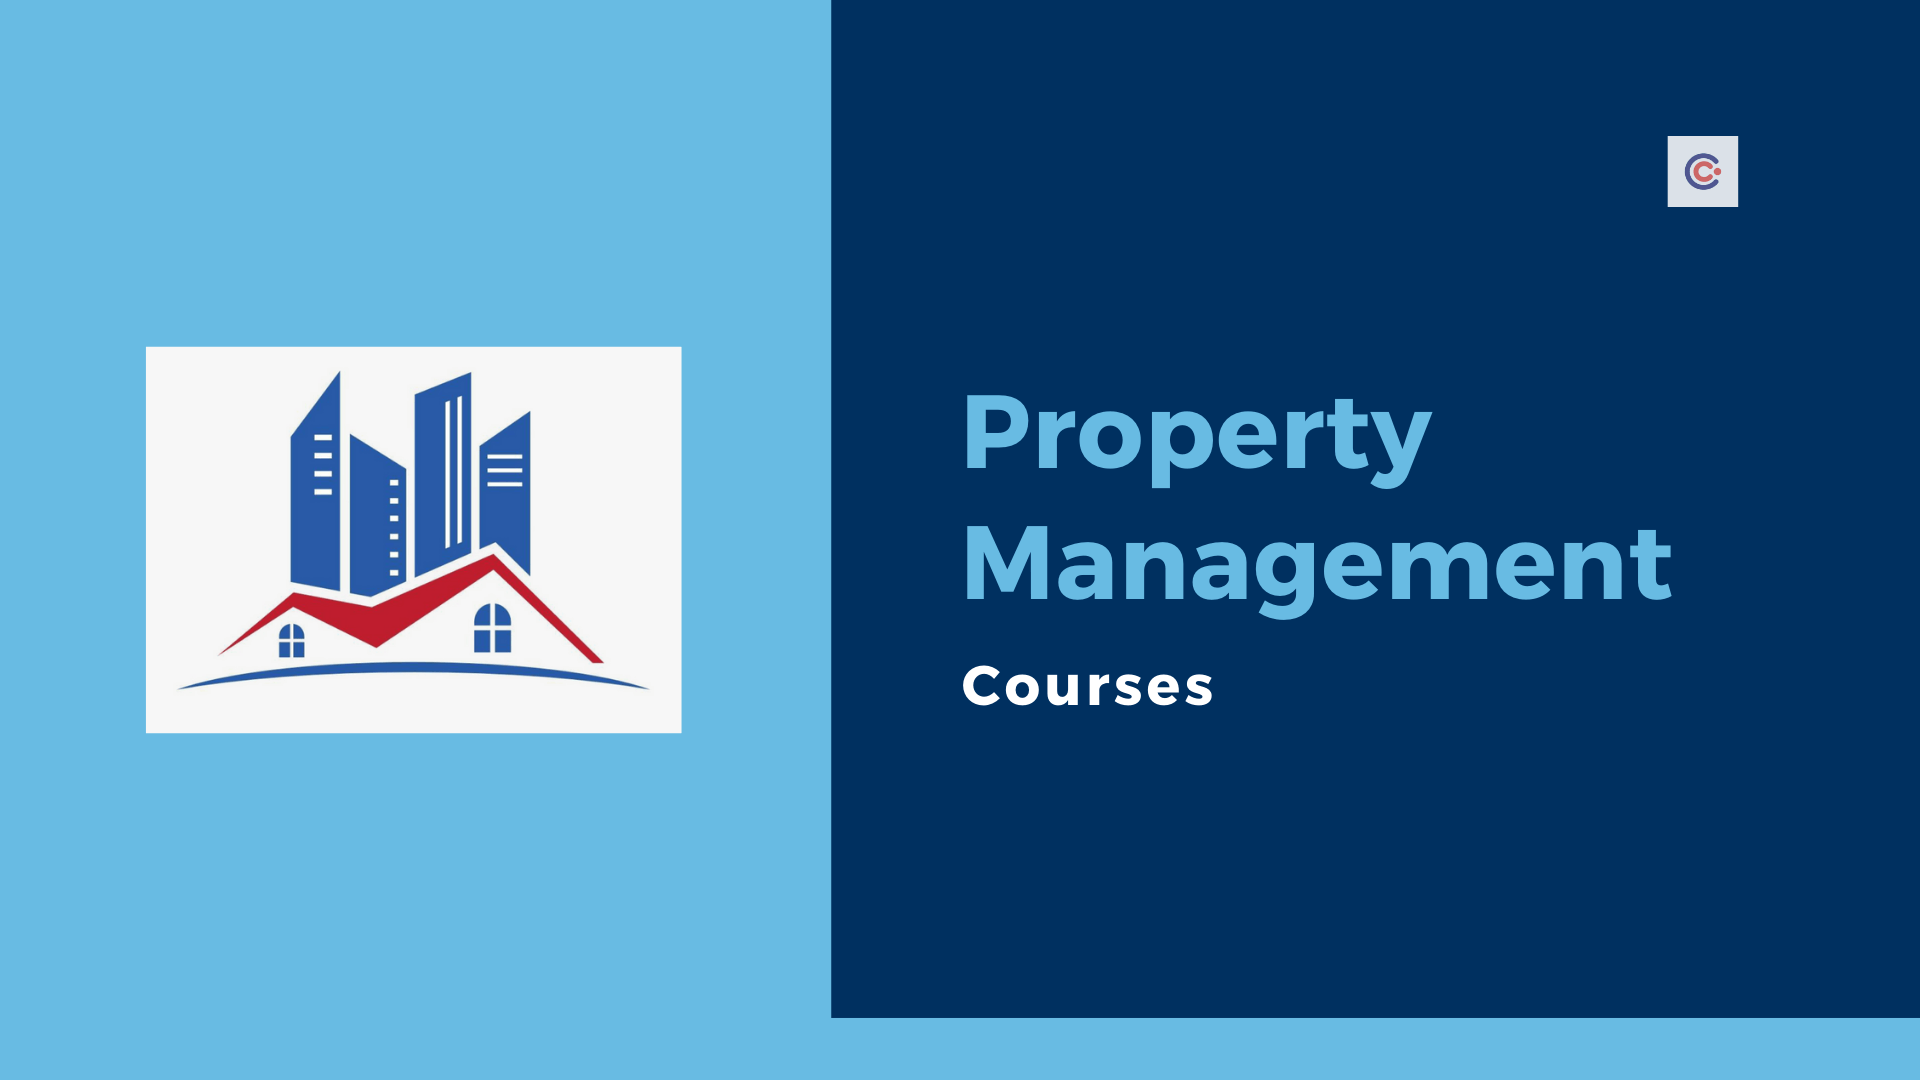 6 Best Property Management Courses and Classes - Learn Property Management Online